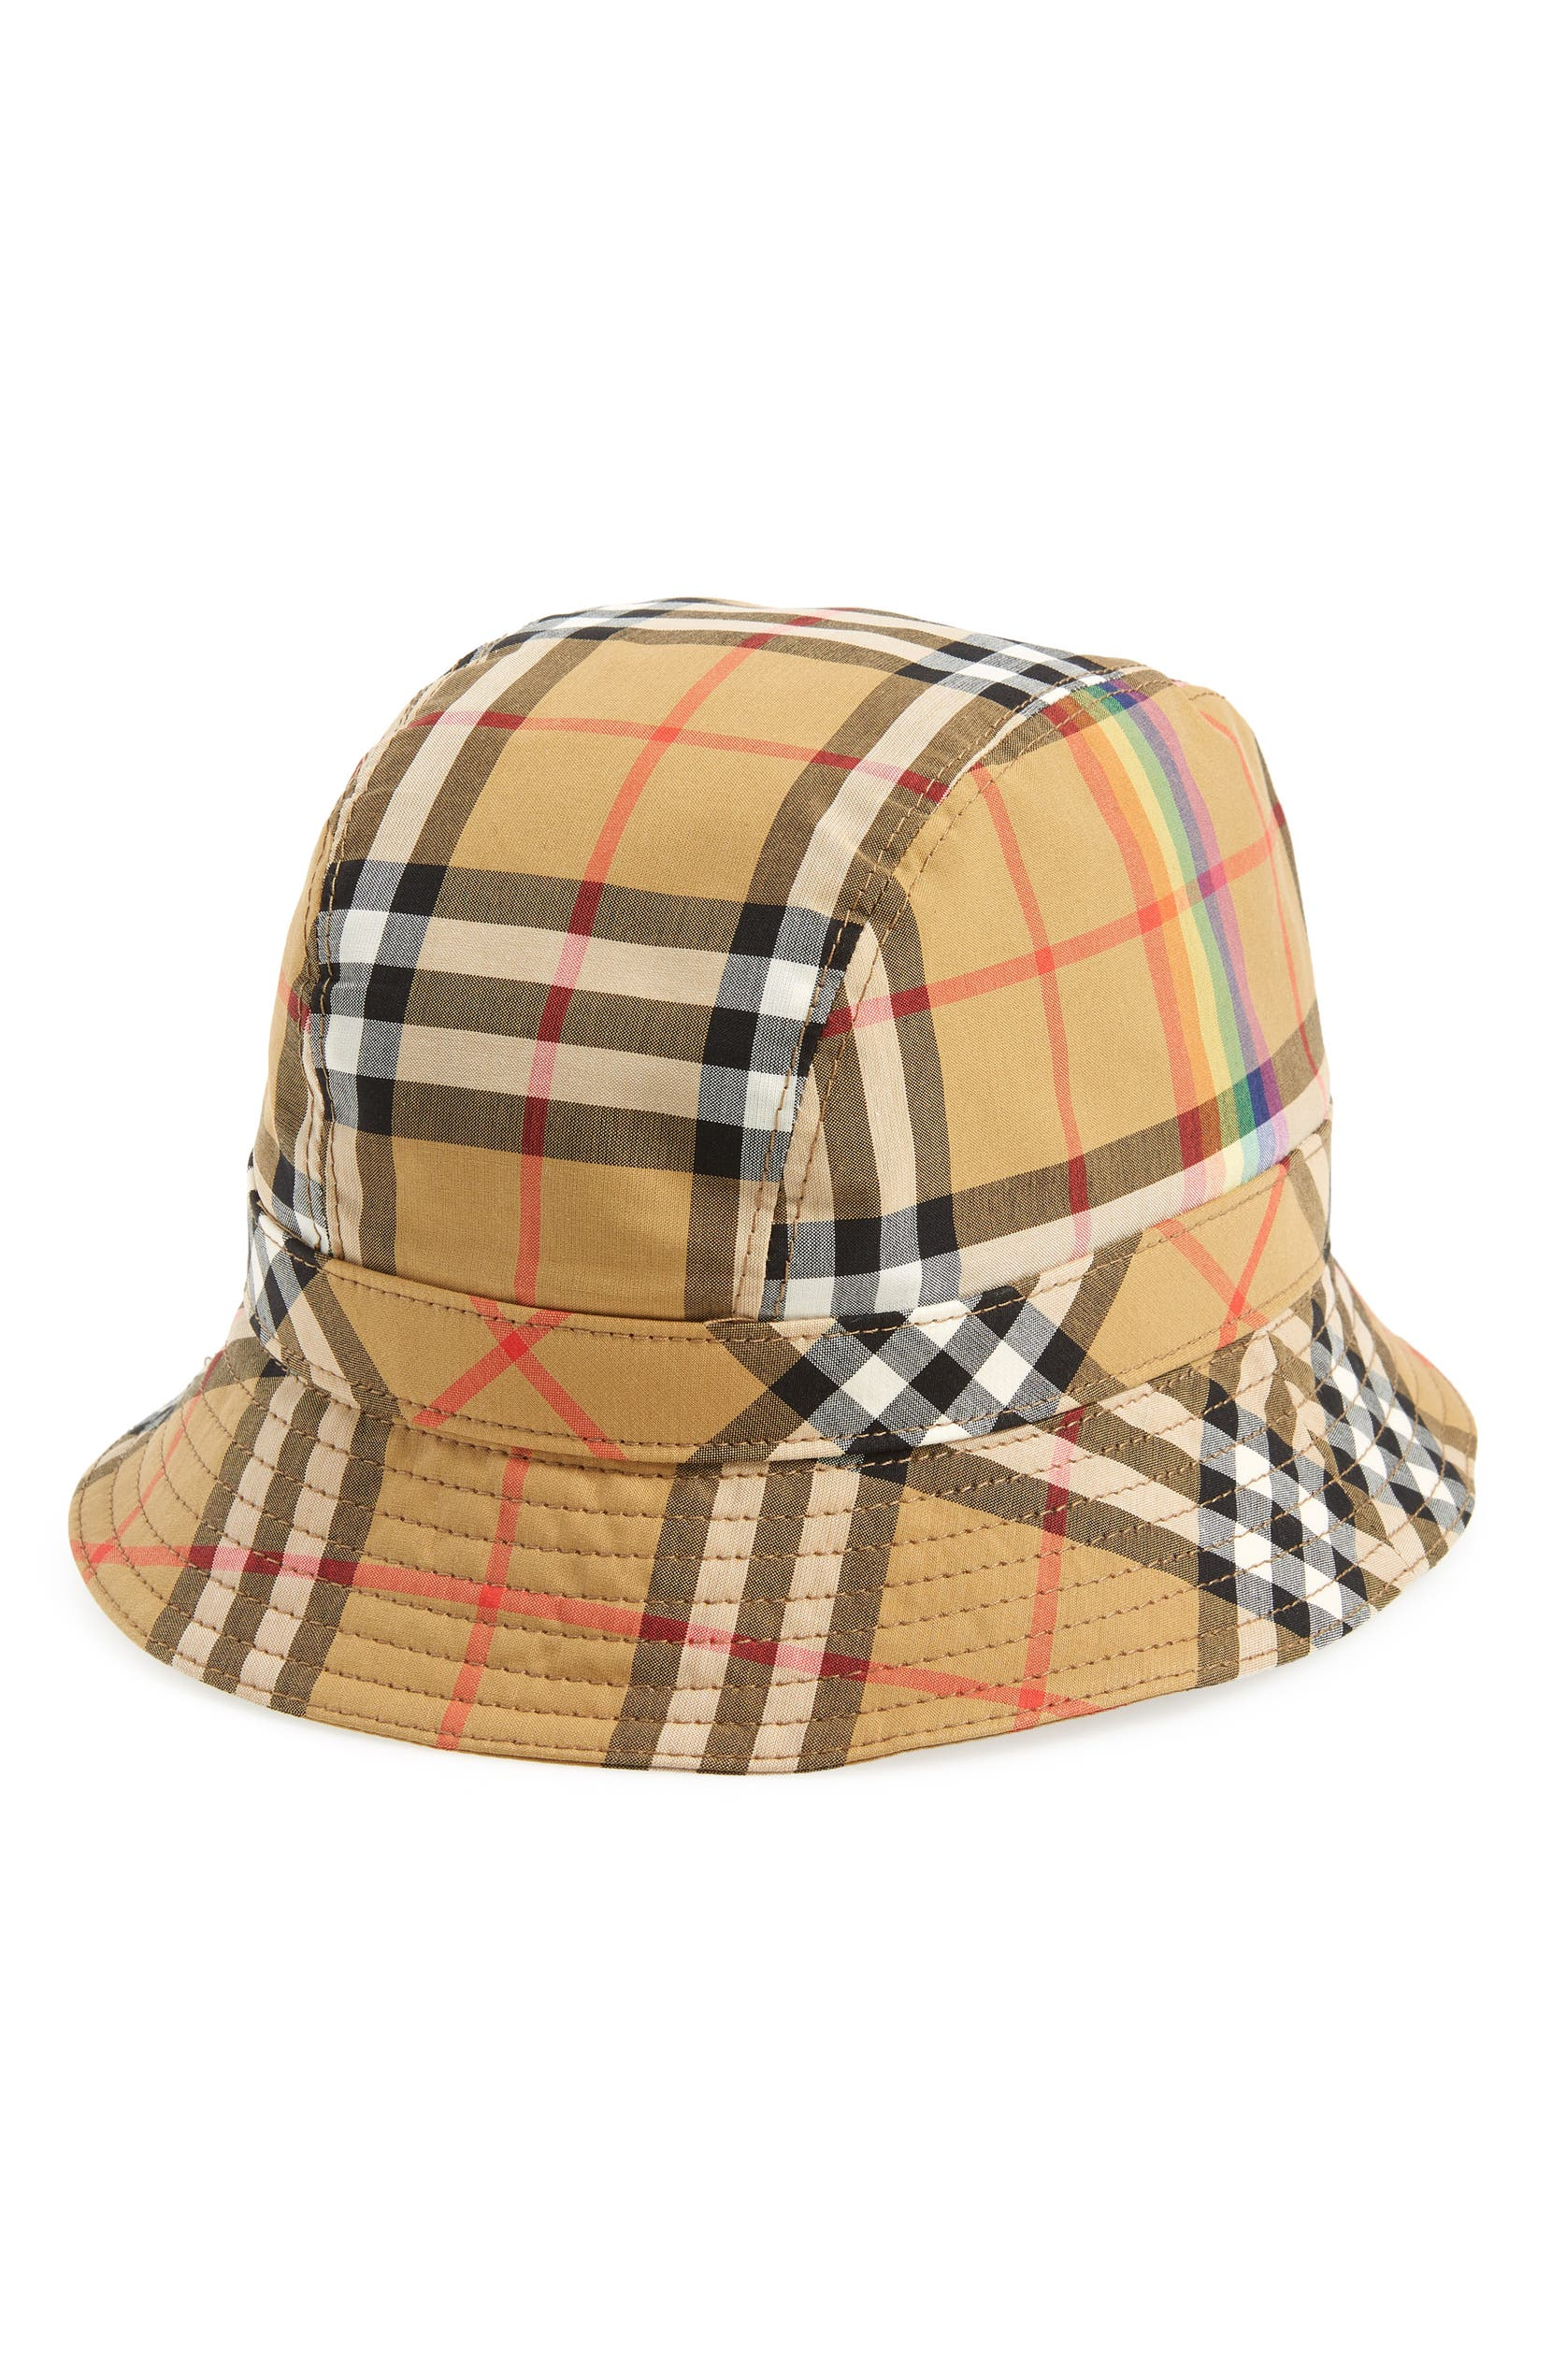 Burberry Rainbow Stripe Vintage Check Bucket Hat  a6c21bd73a2